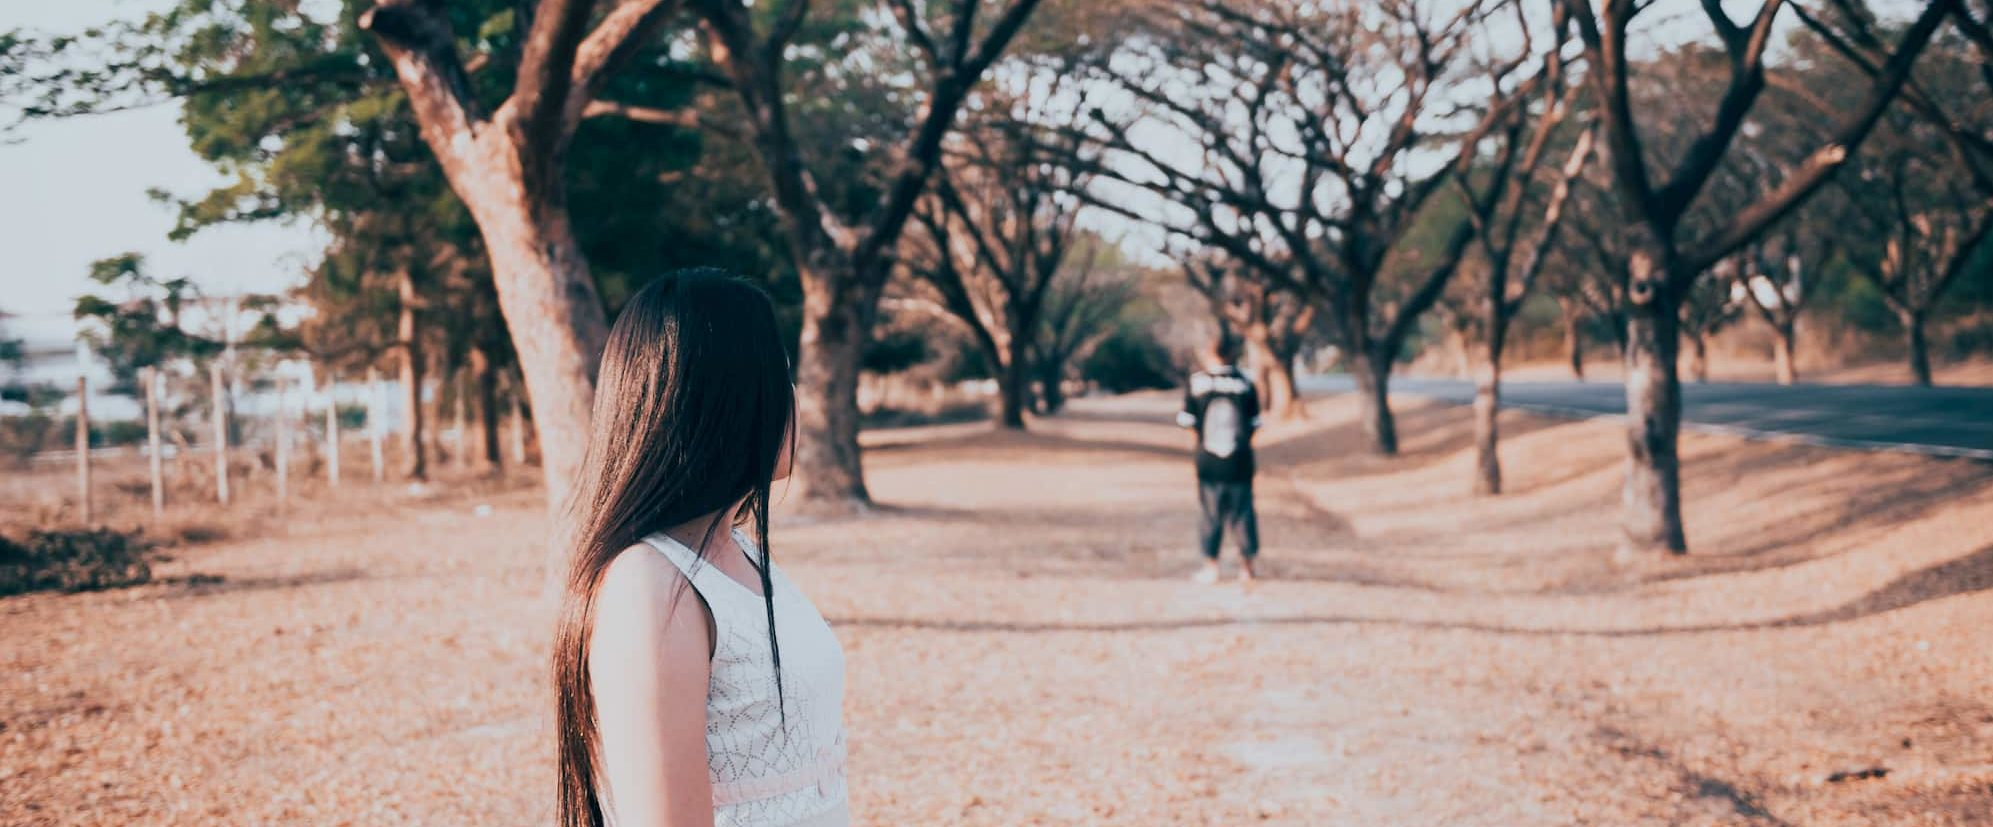 How To Deal With An Anxious Or Avoidant Partner?